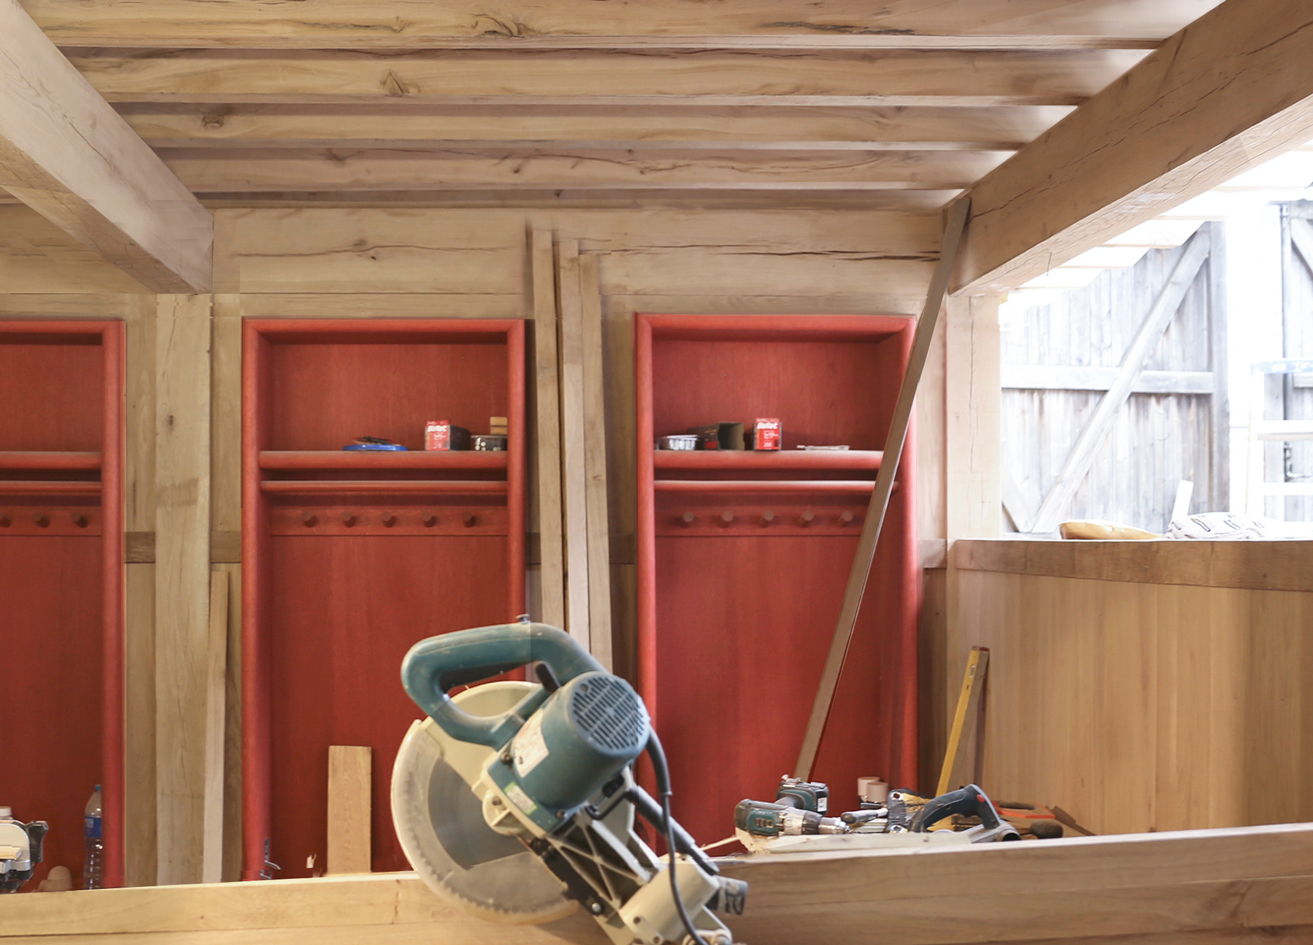 red club lockers within the timber structure